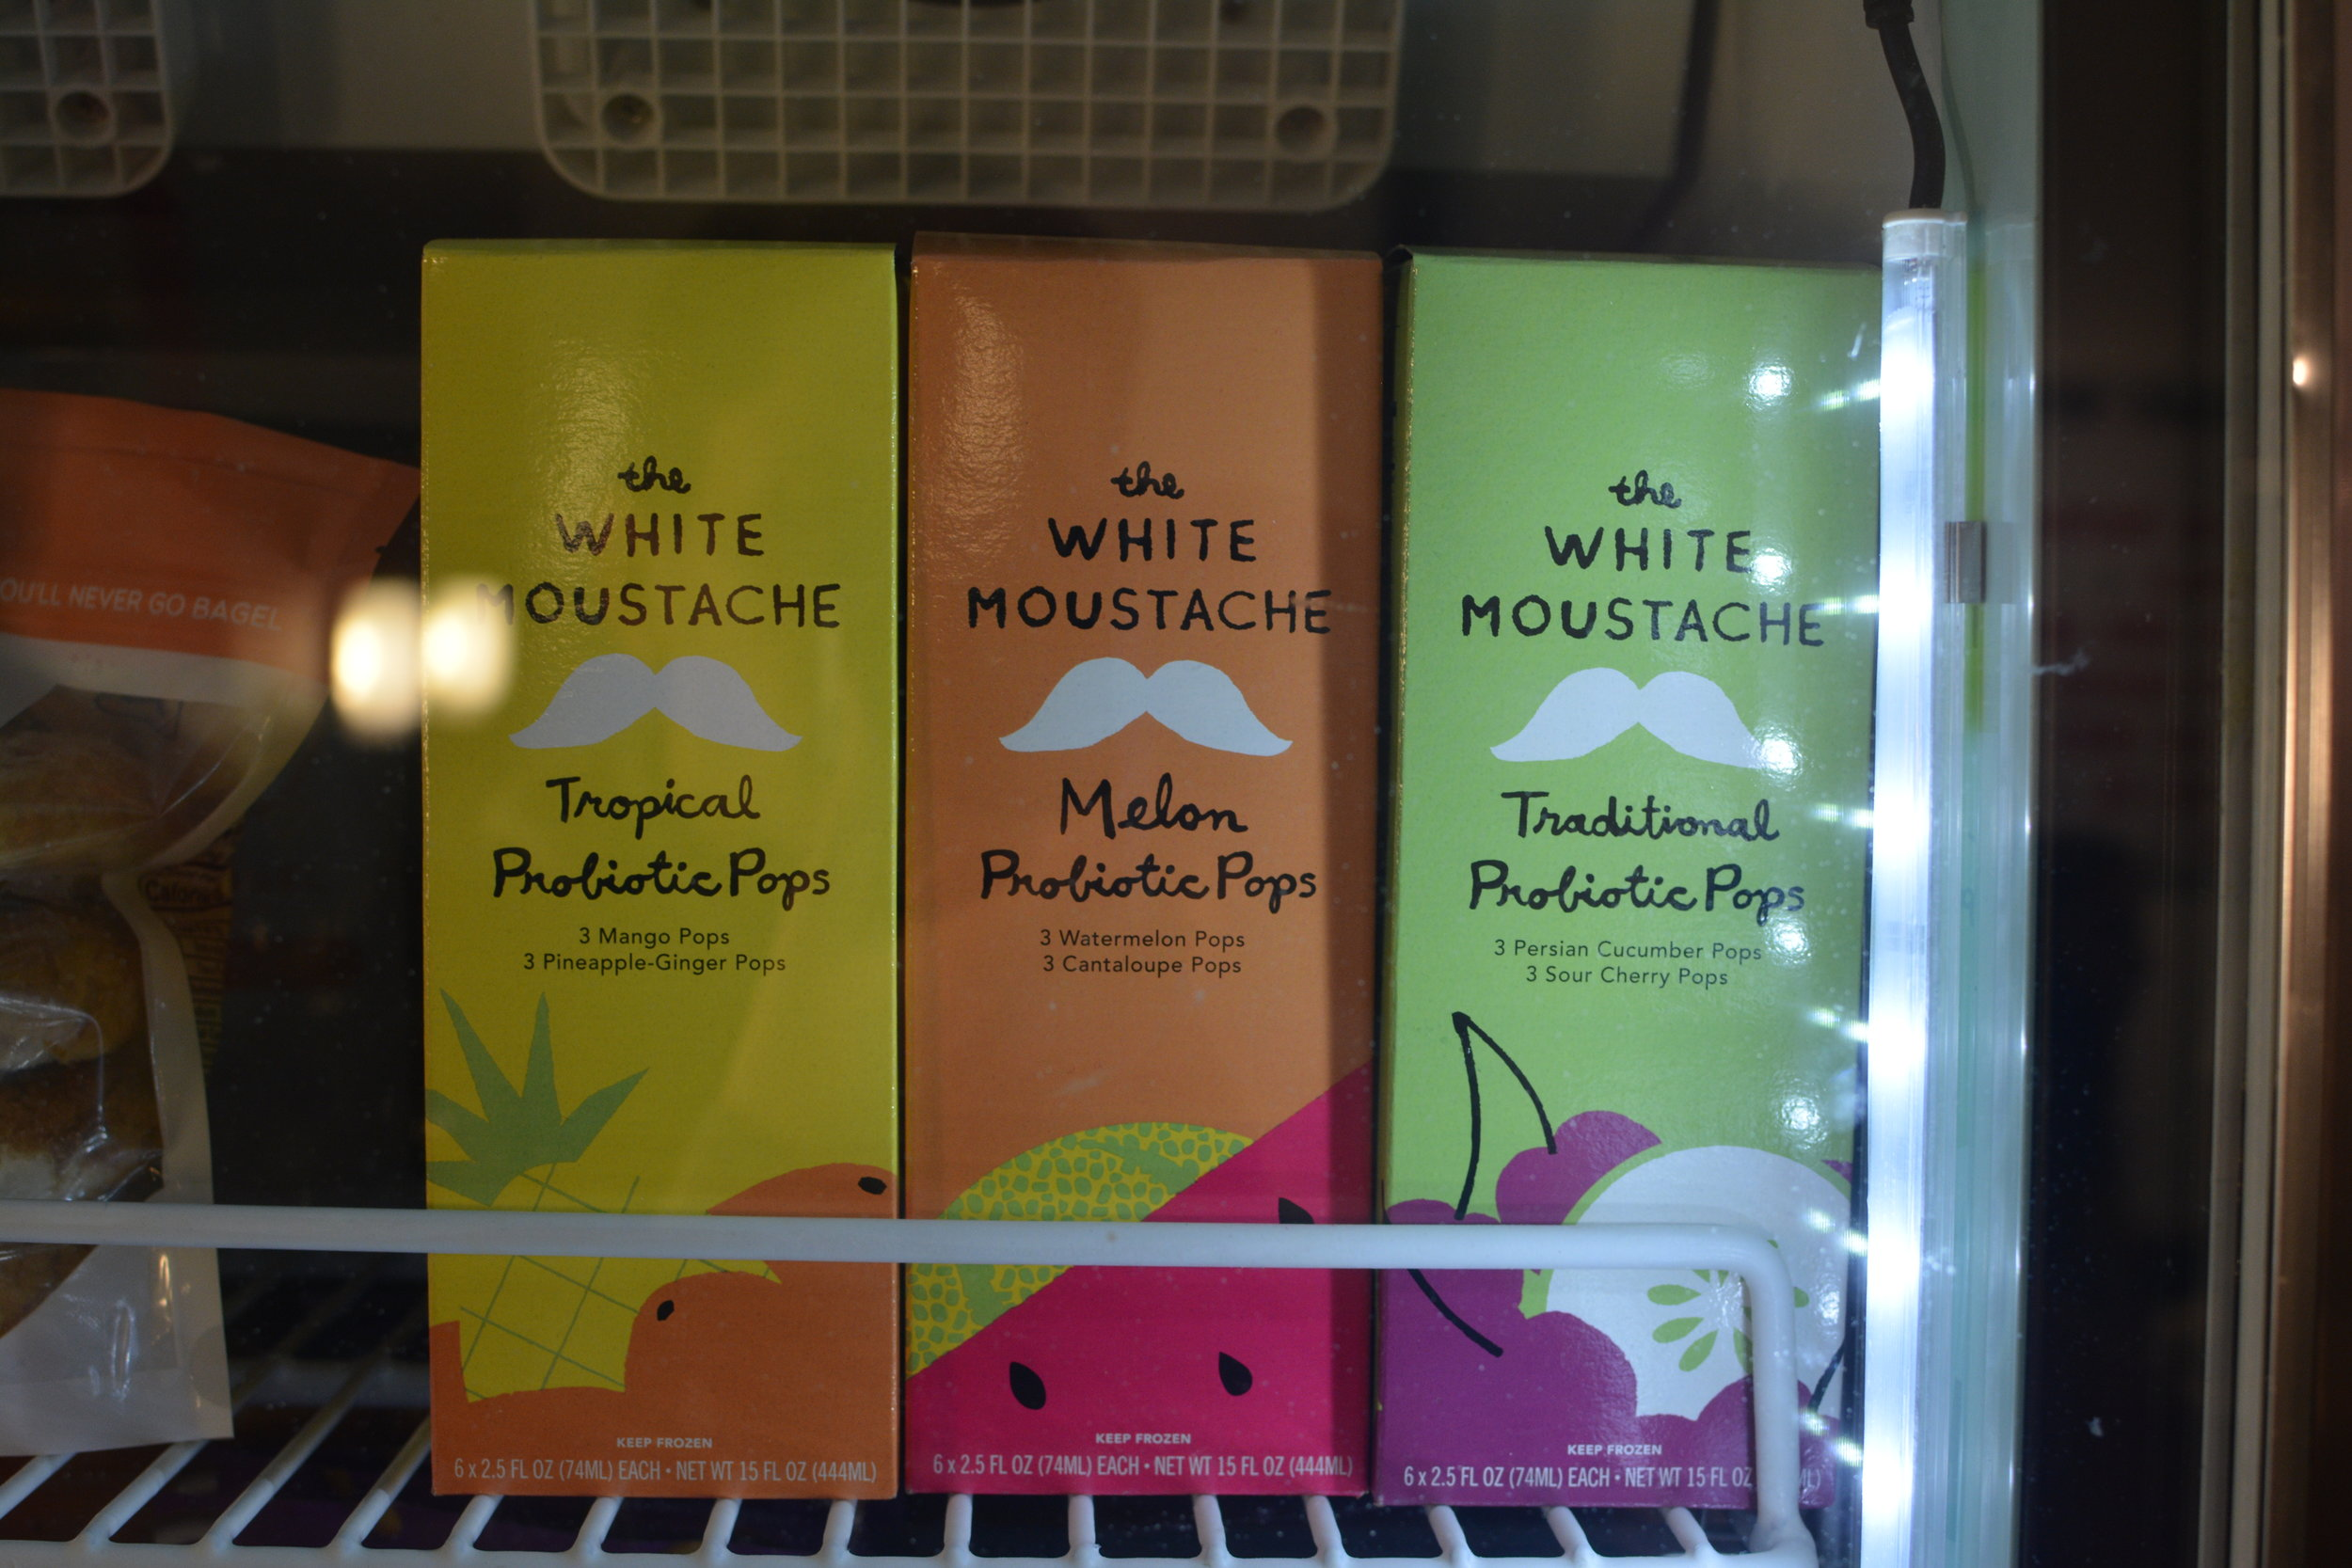 The White Moustache Probiotic Pops